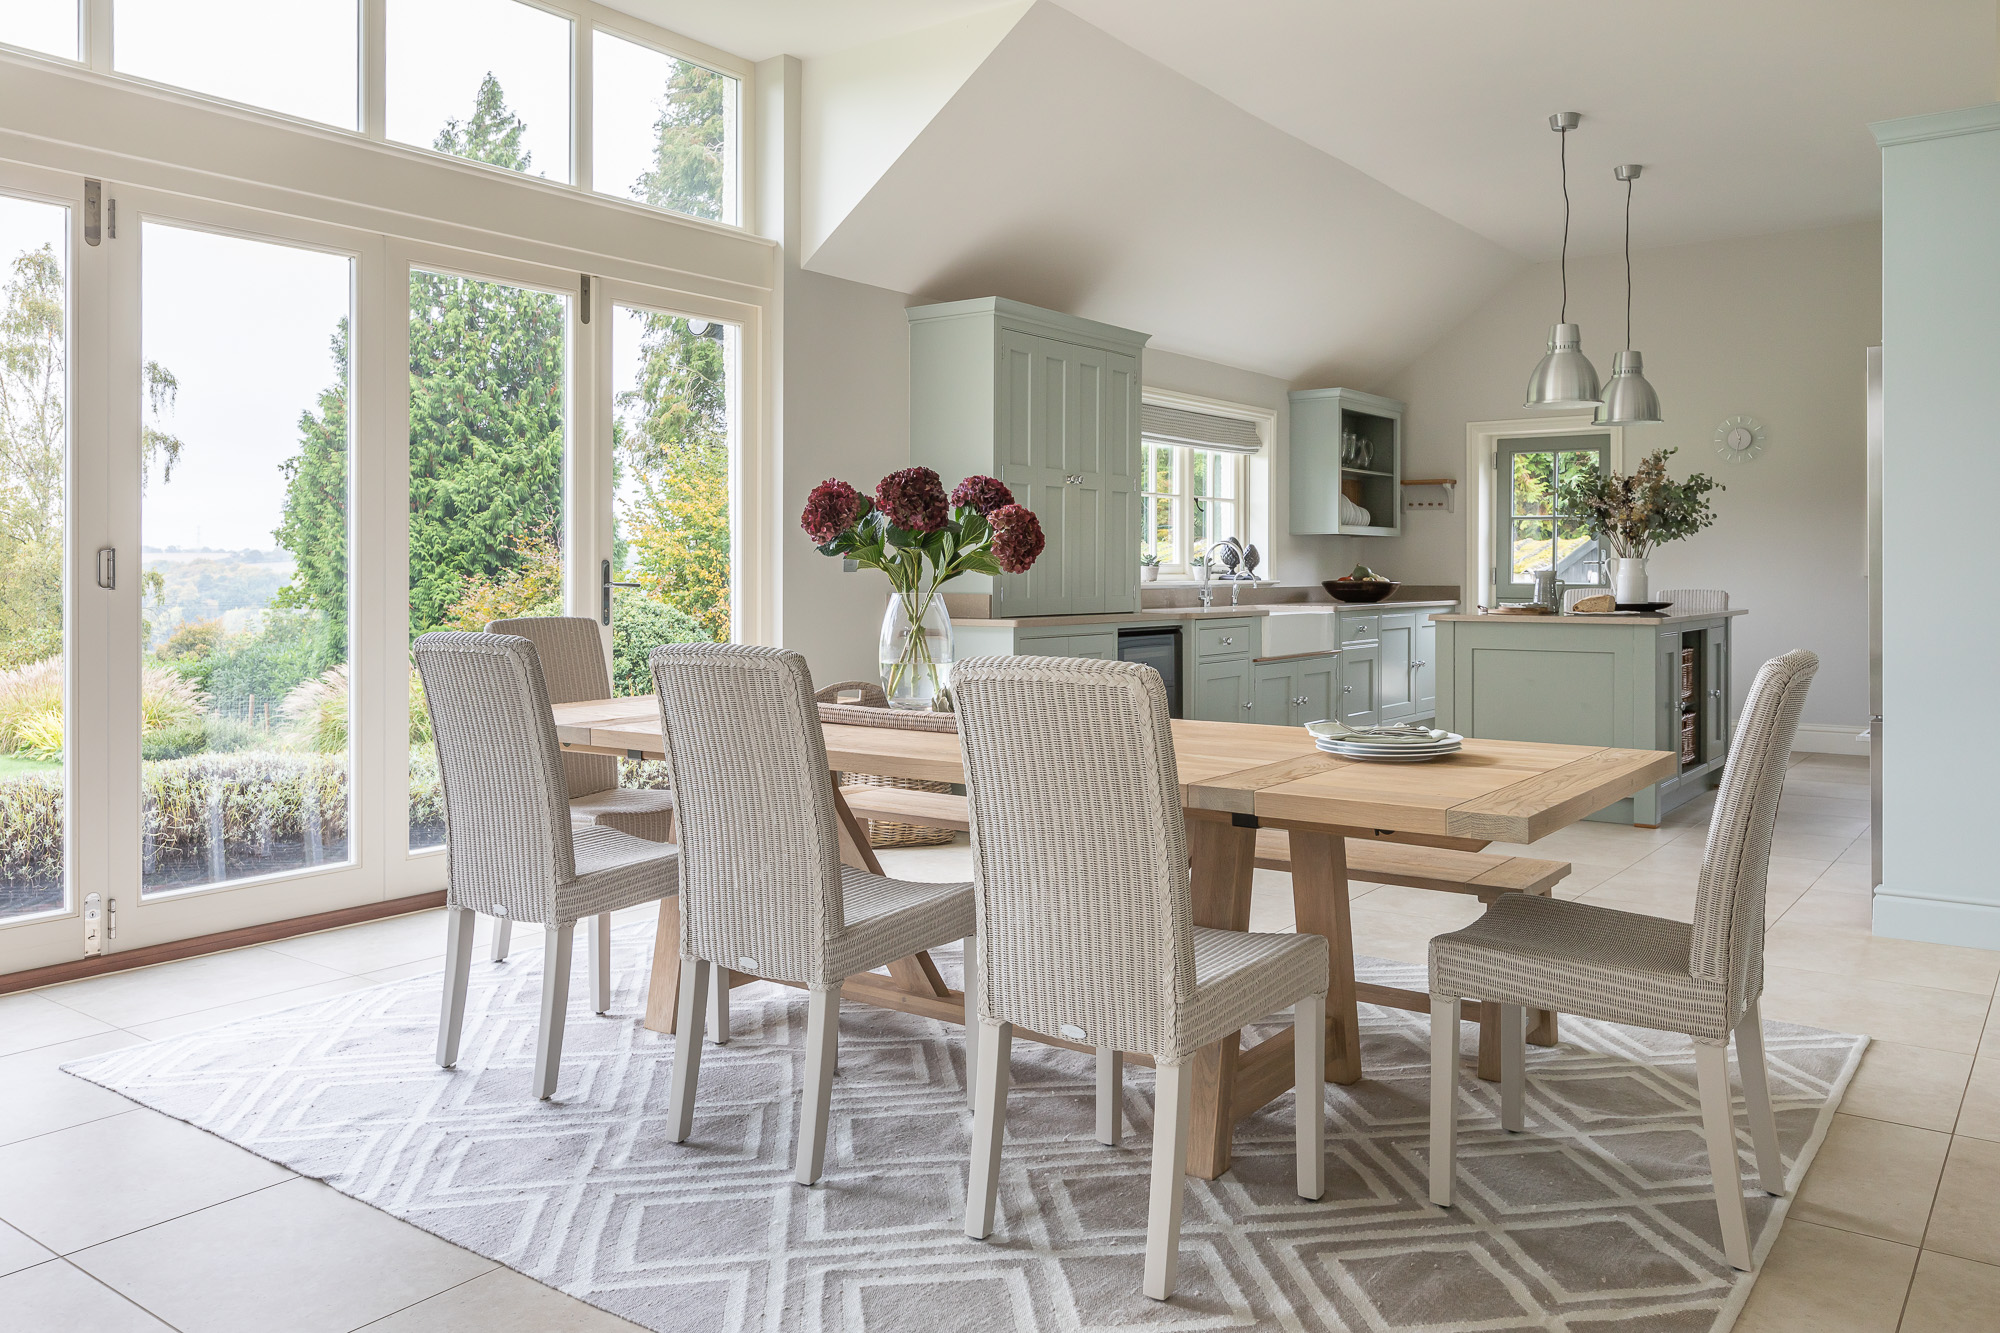 jonathan bond, interior photographer, dining room table and chairs, great missenden, buckinghamshire